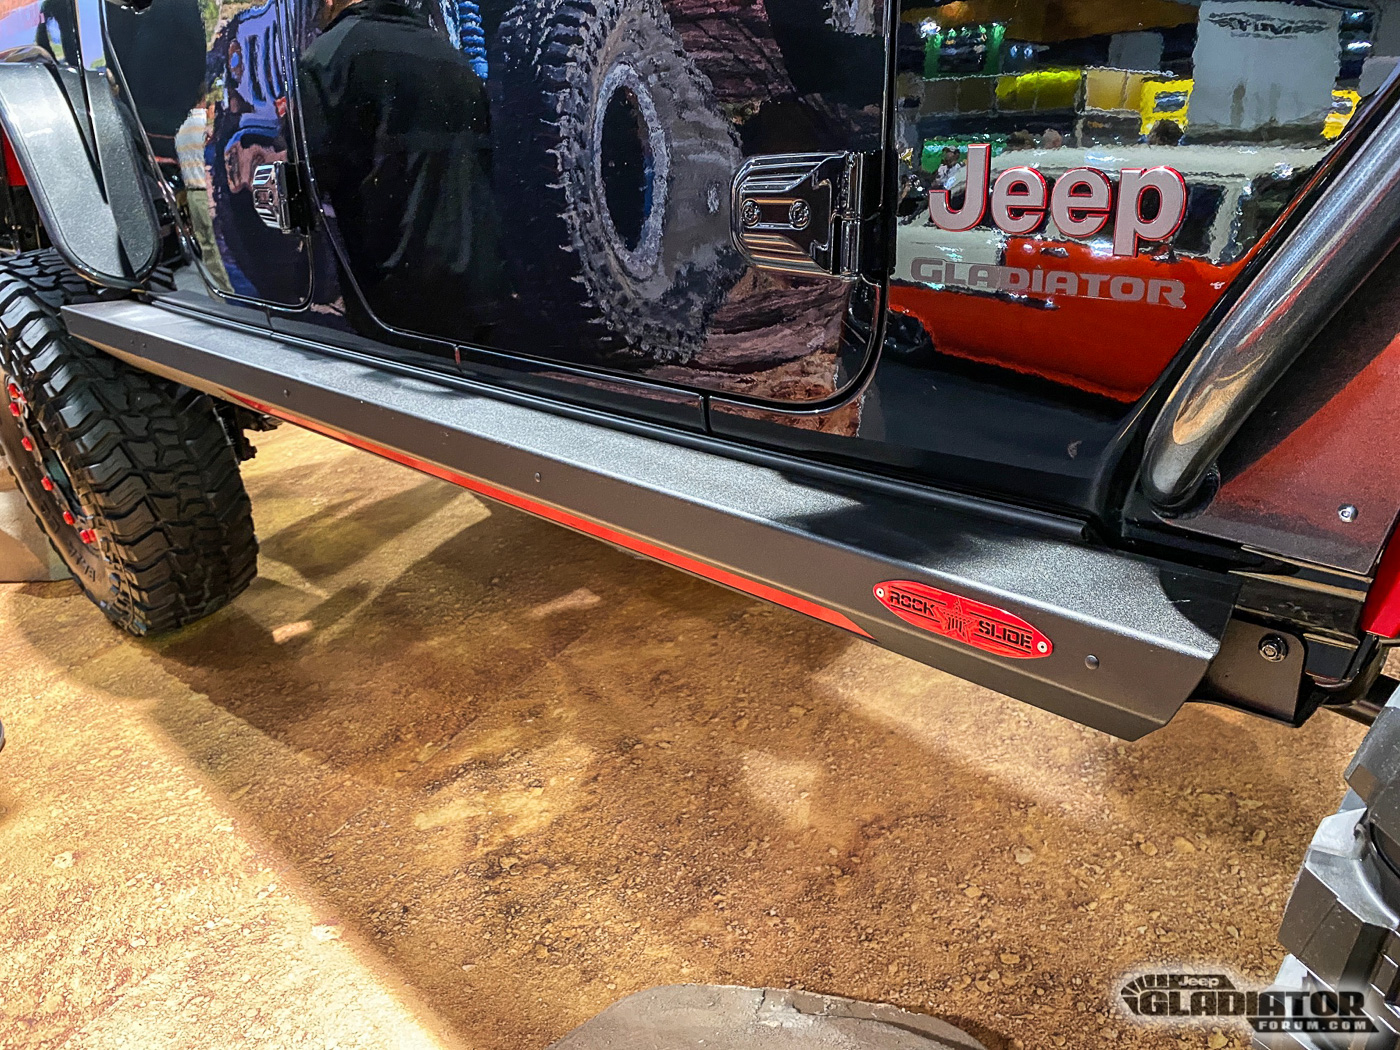 Mickey-Thompson-Genright-Off-Road-Baja-Boss-Edition-Gladiator-Build-SEMA-2019-11.jpg